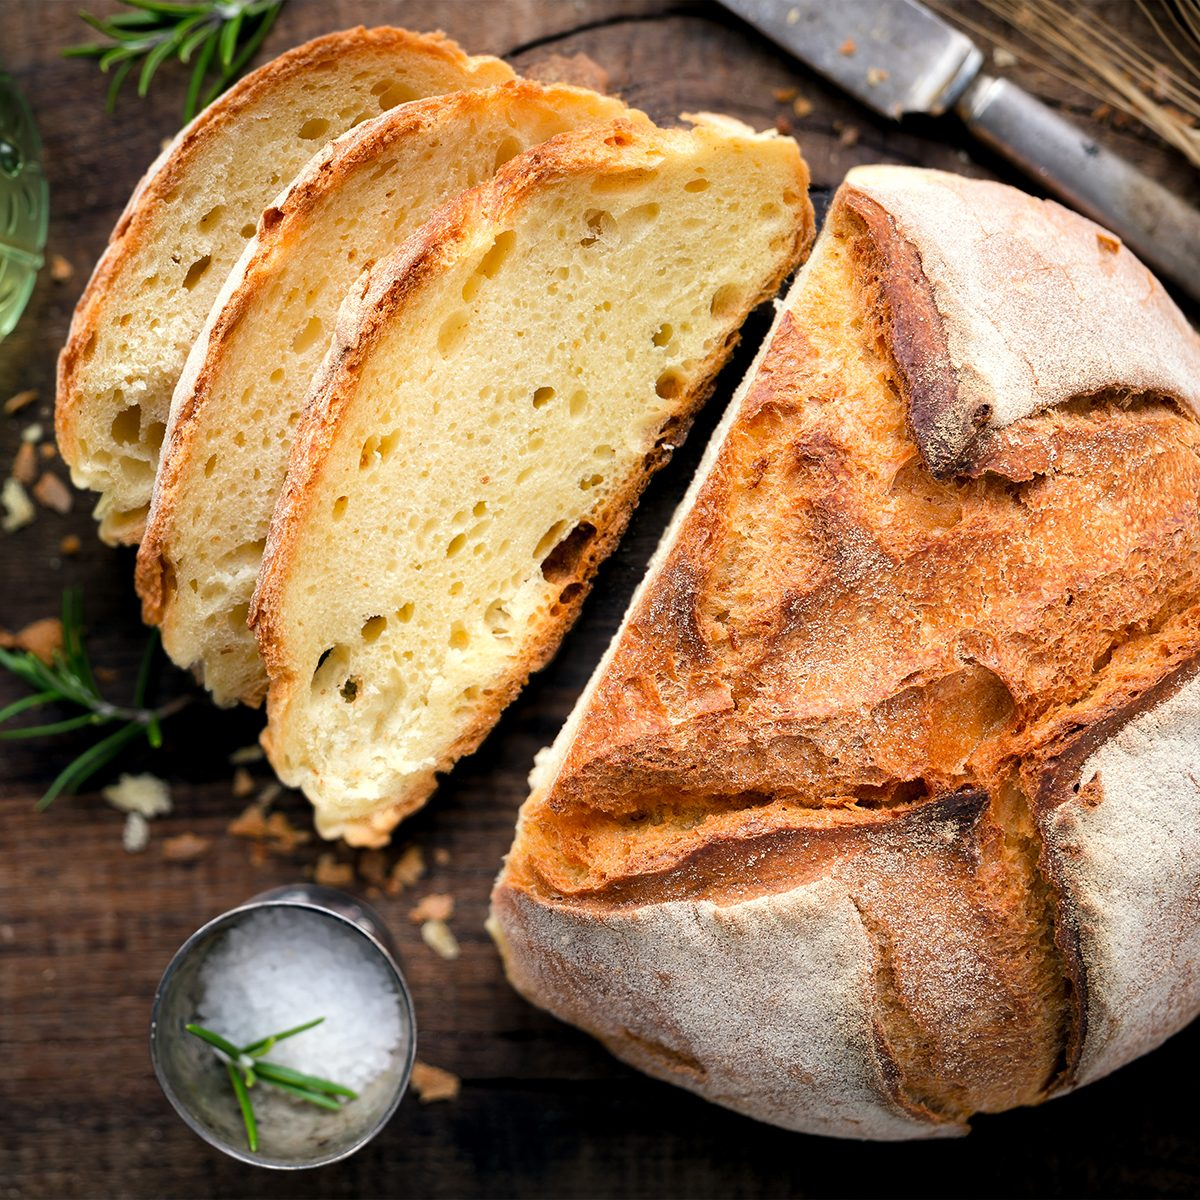 Rustic loaf of homemade bread served with olive oil, rosemary and salt on dark wooden table. Overhead view